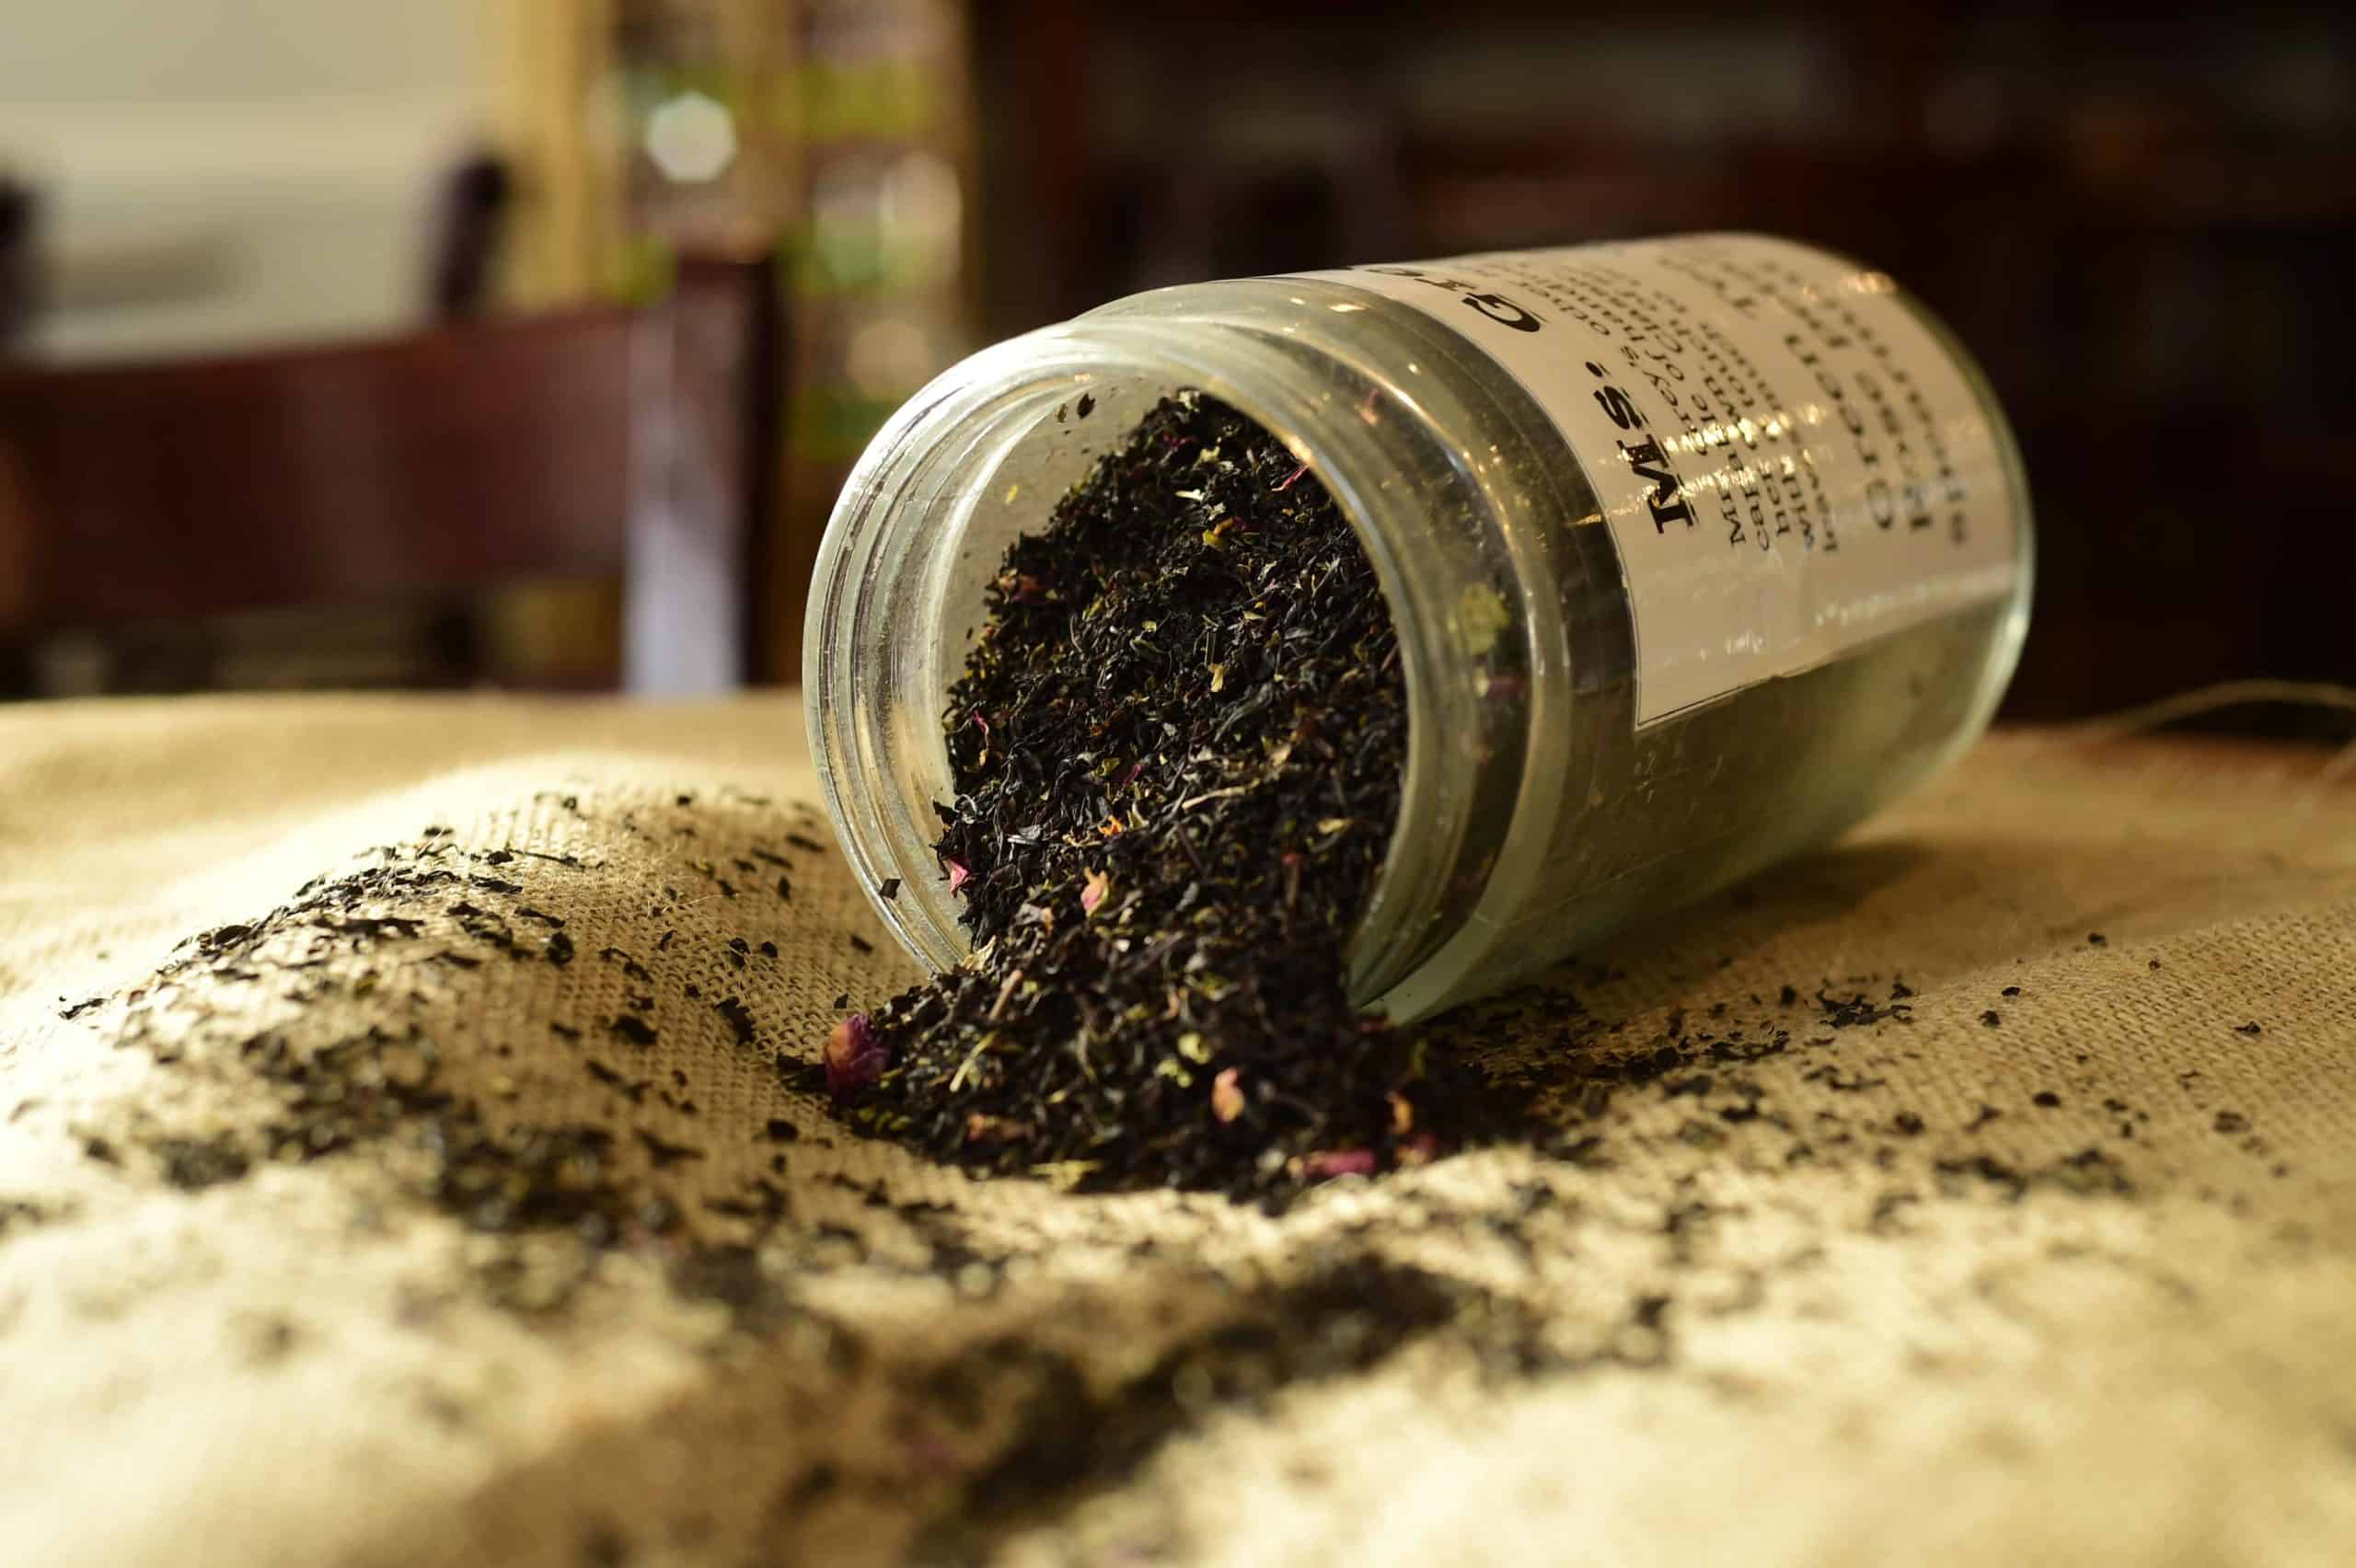 Loose leaf tea spilling out onto a table